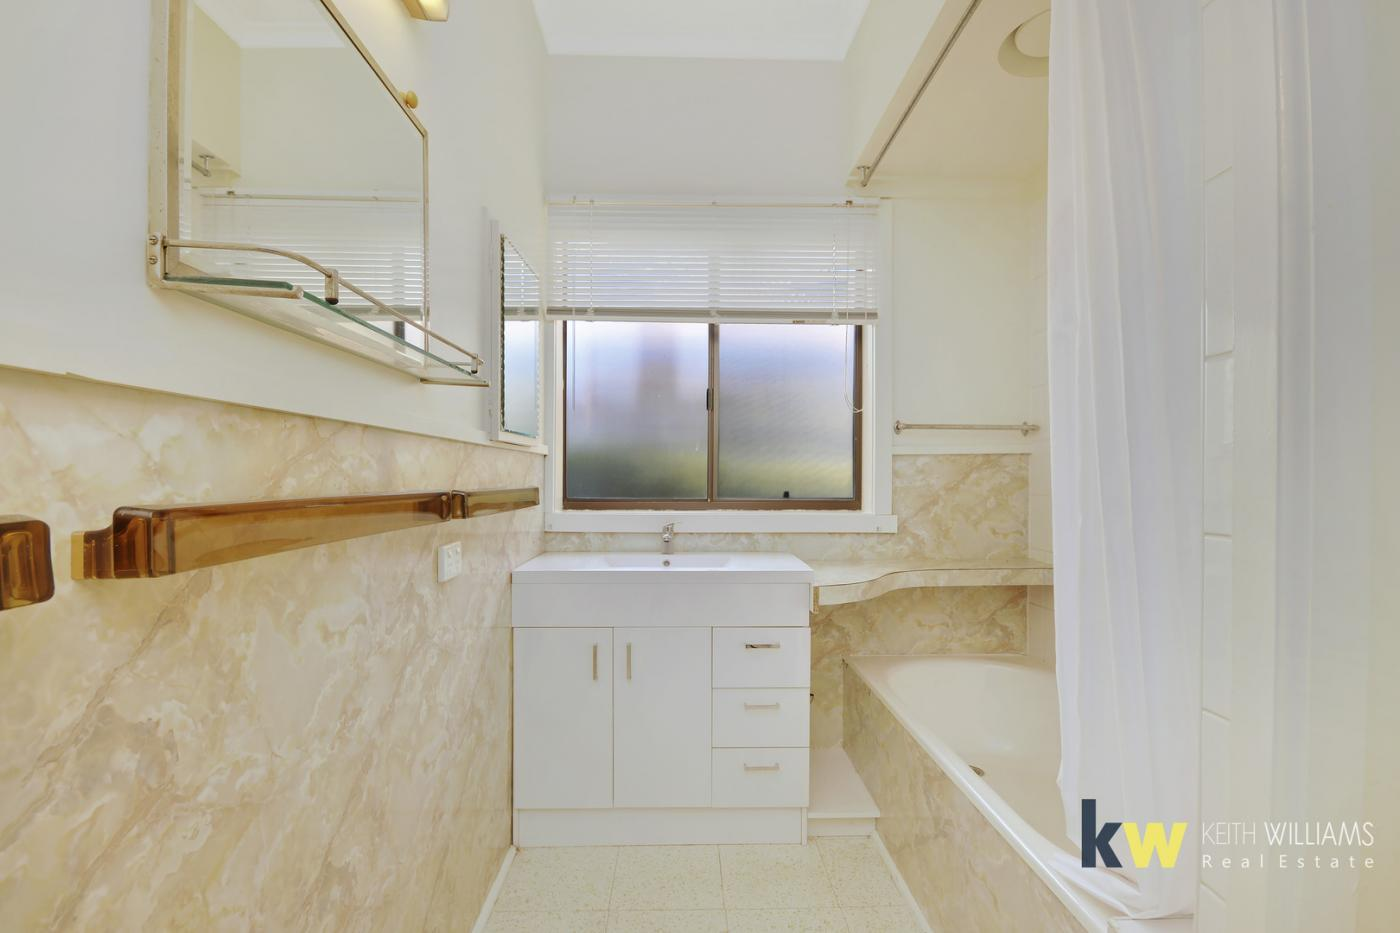 Bathroom Renovations Traralgon 55 bank street, traralgon, vic 3844 for sale | realestateview